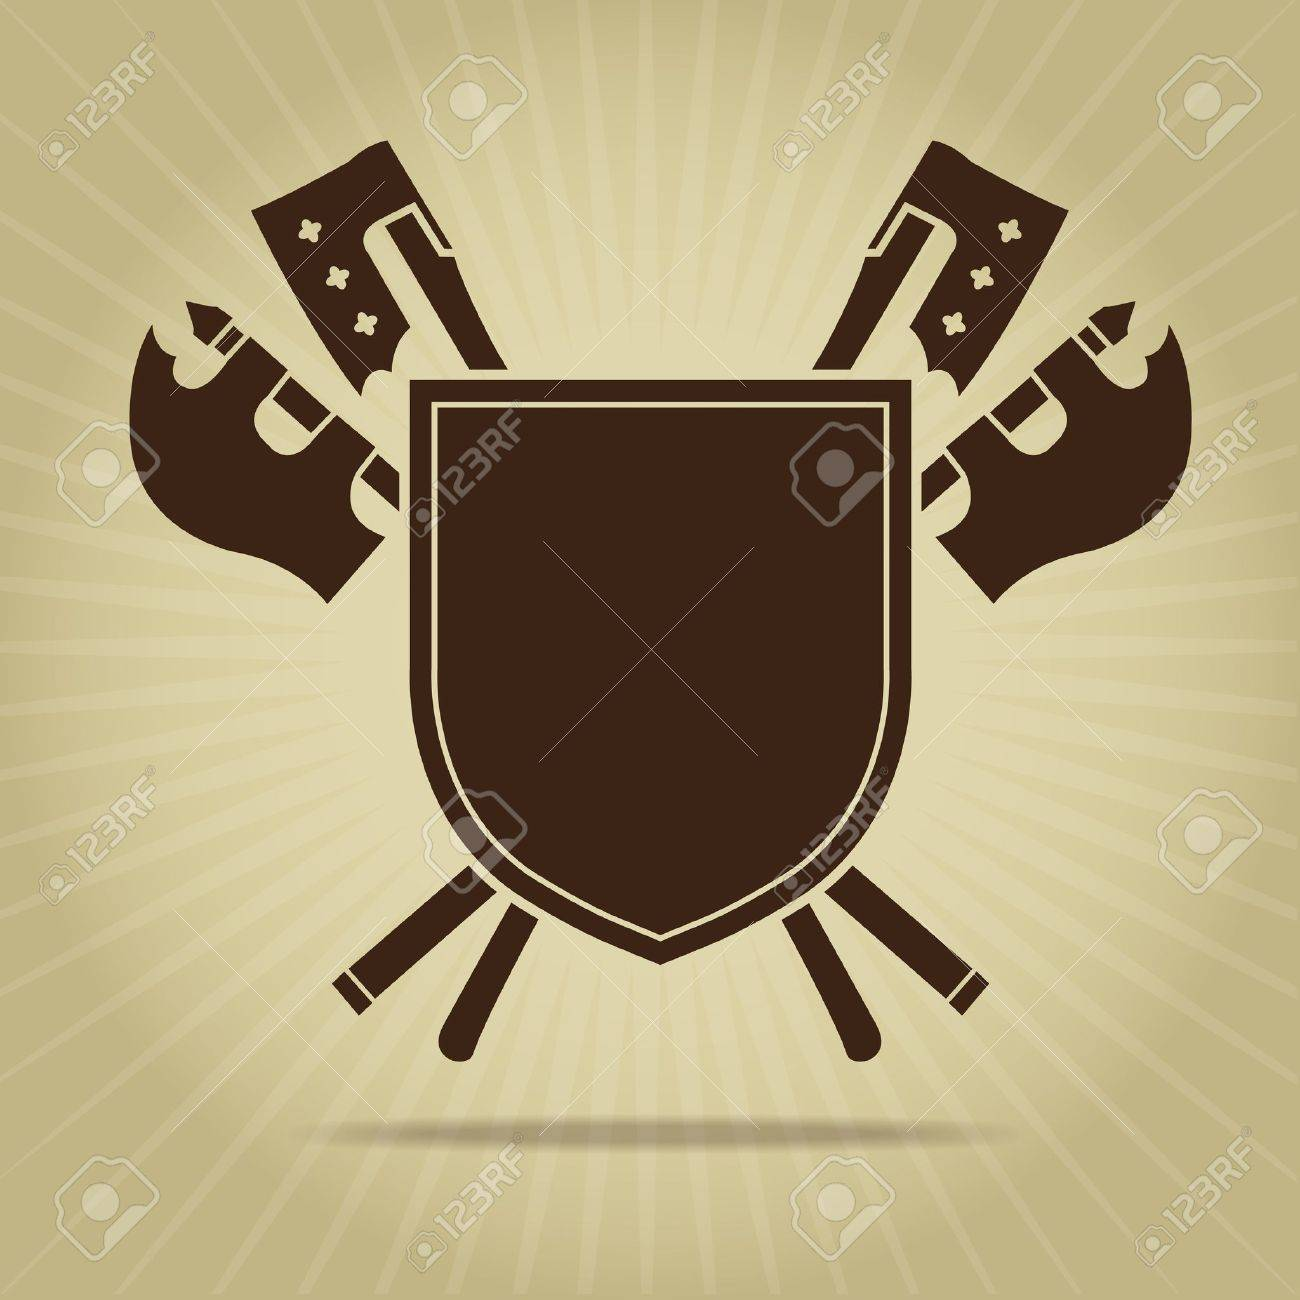 Blank Vintage Shield with Crossed Axes Stock Vector - 18051187